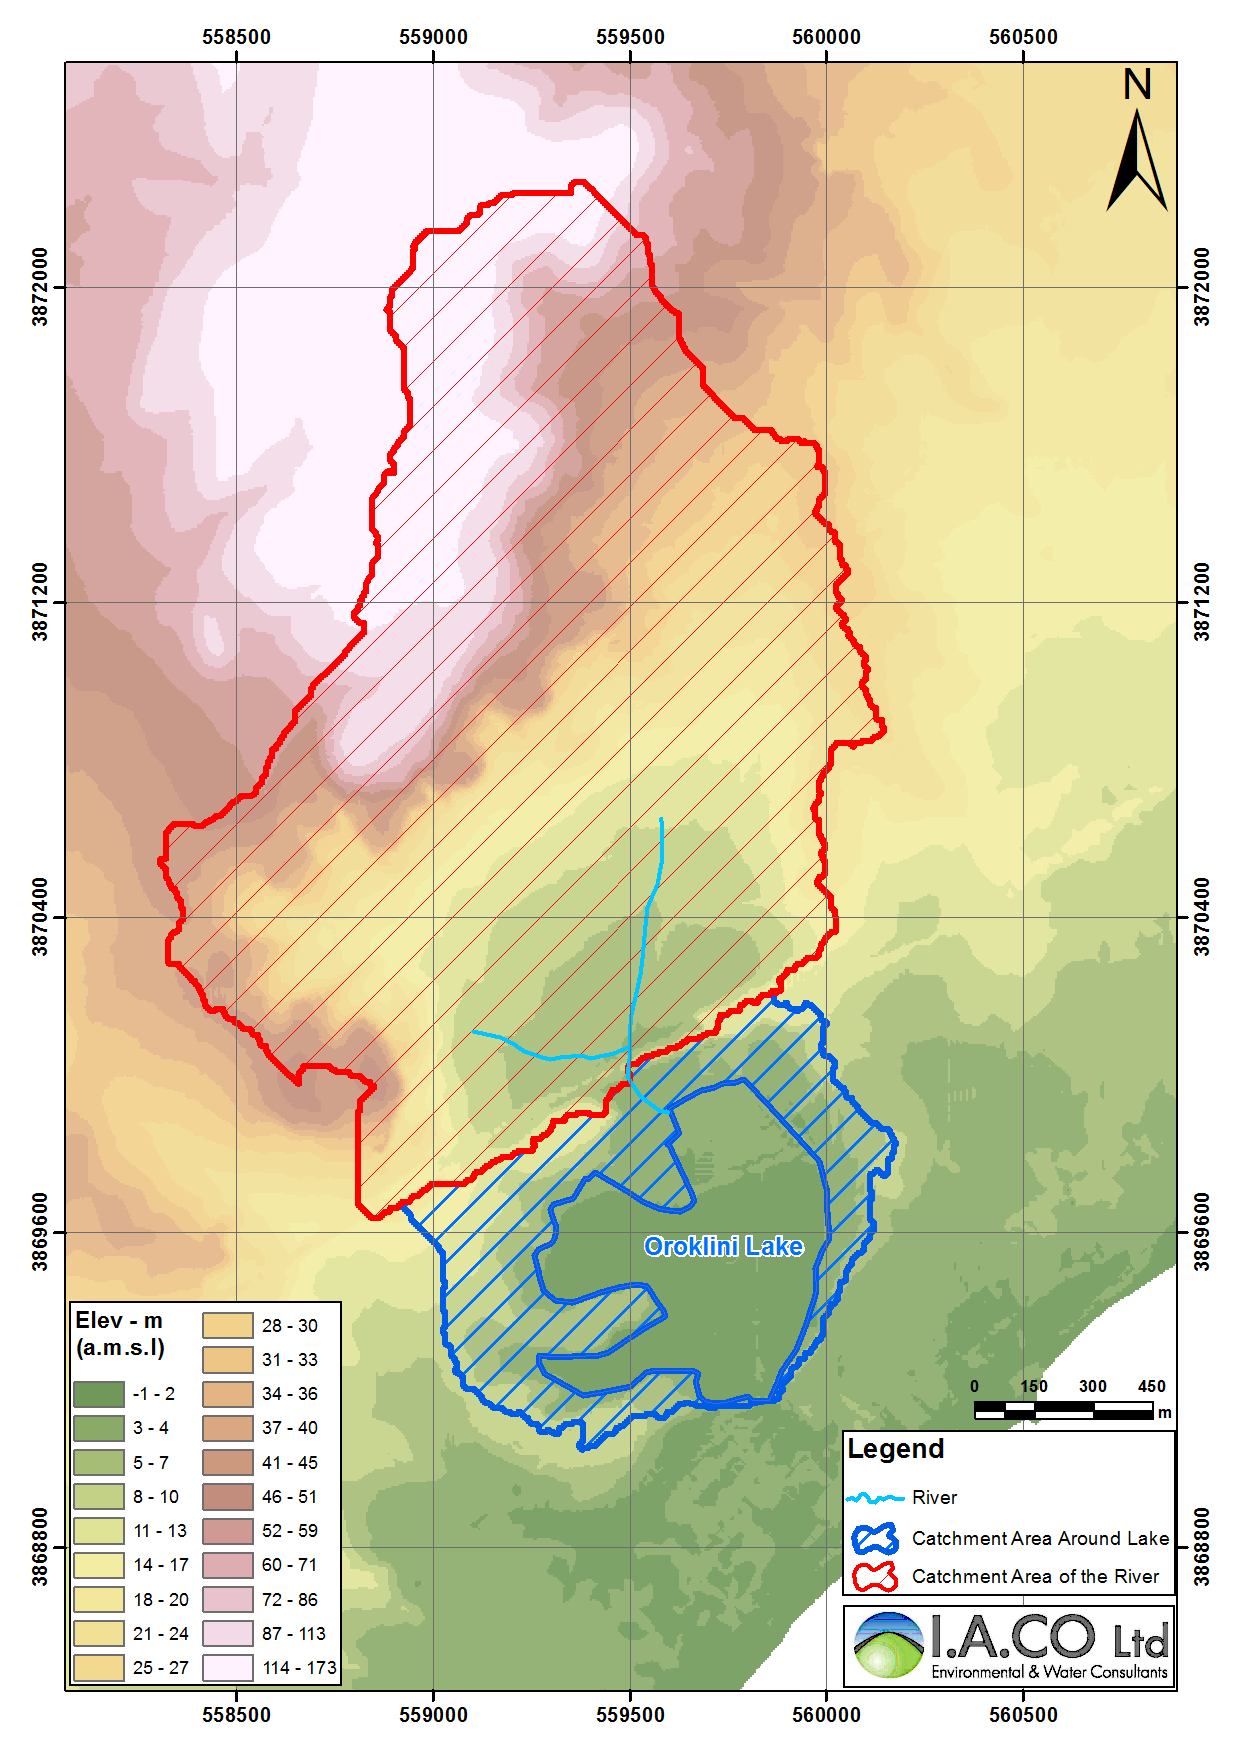 Map 2-2: Elevation map of the subcatchments around the streams